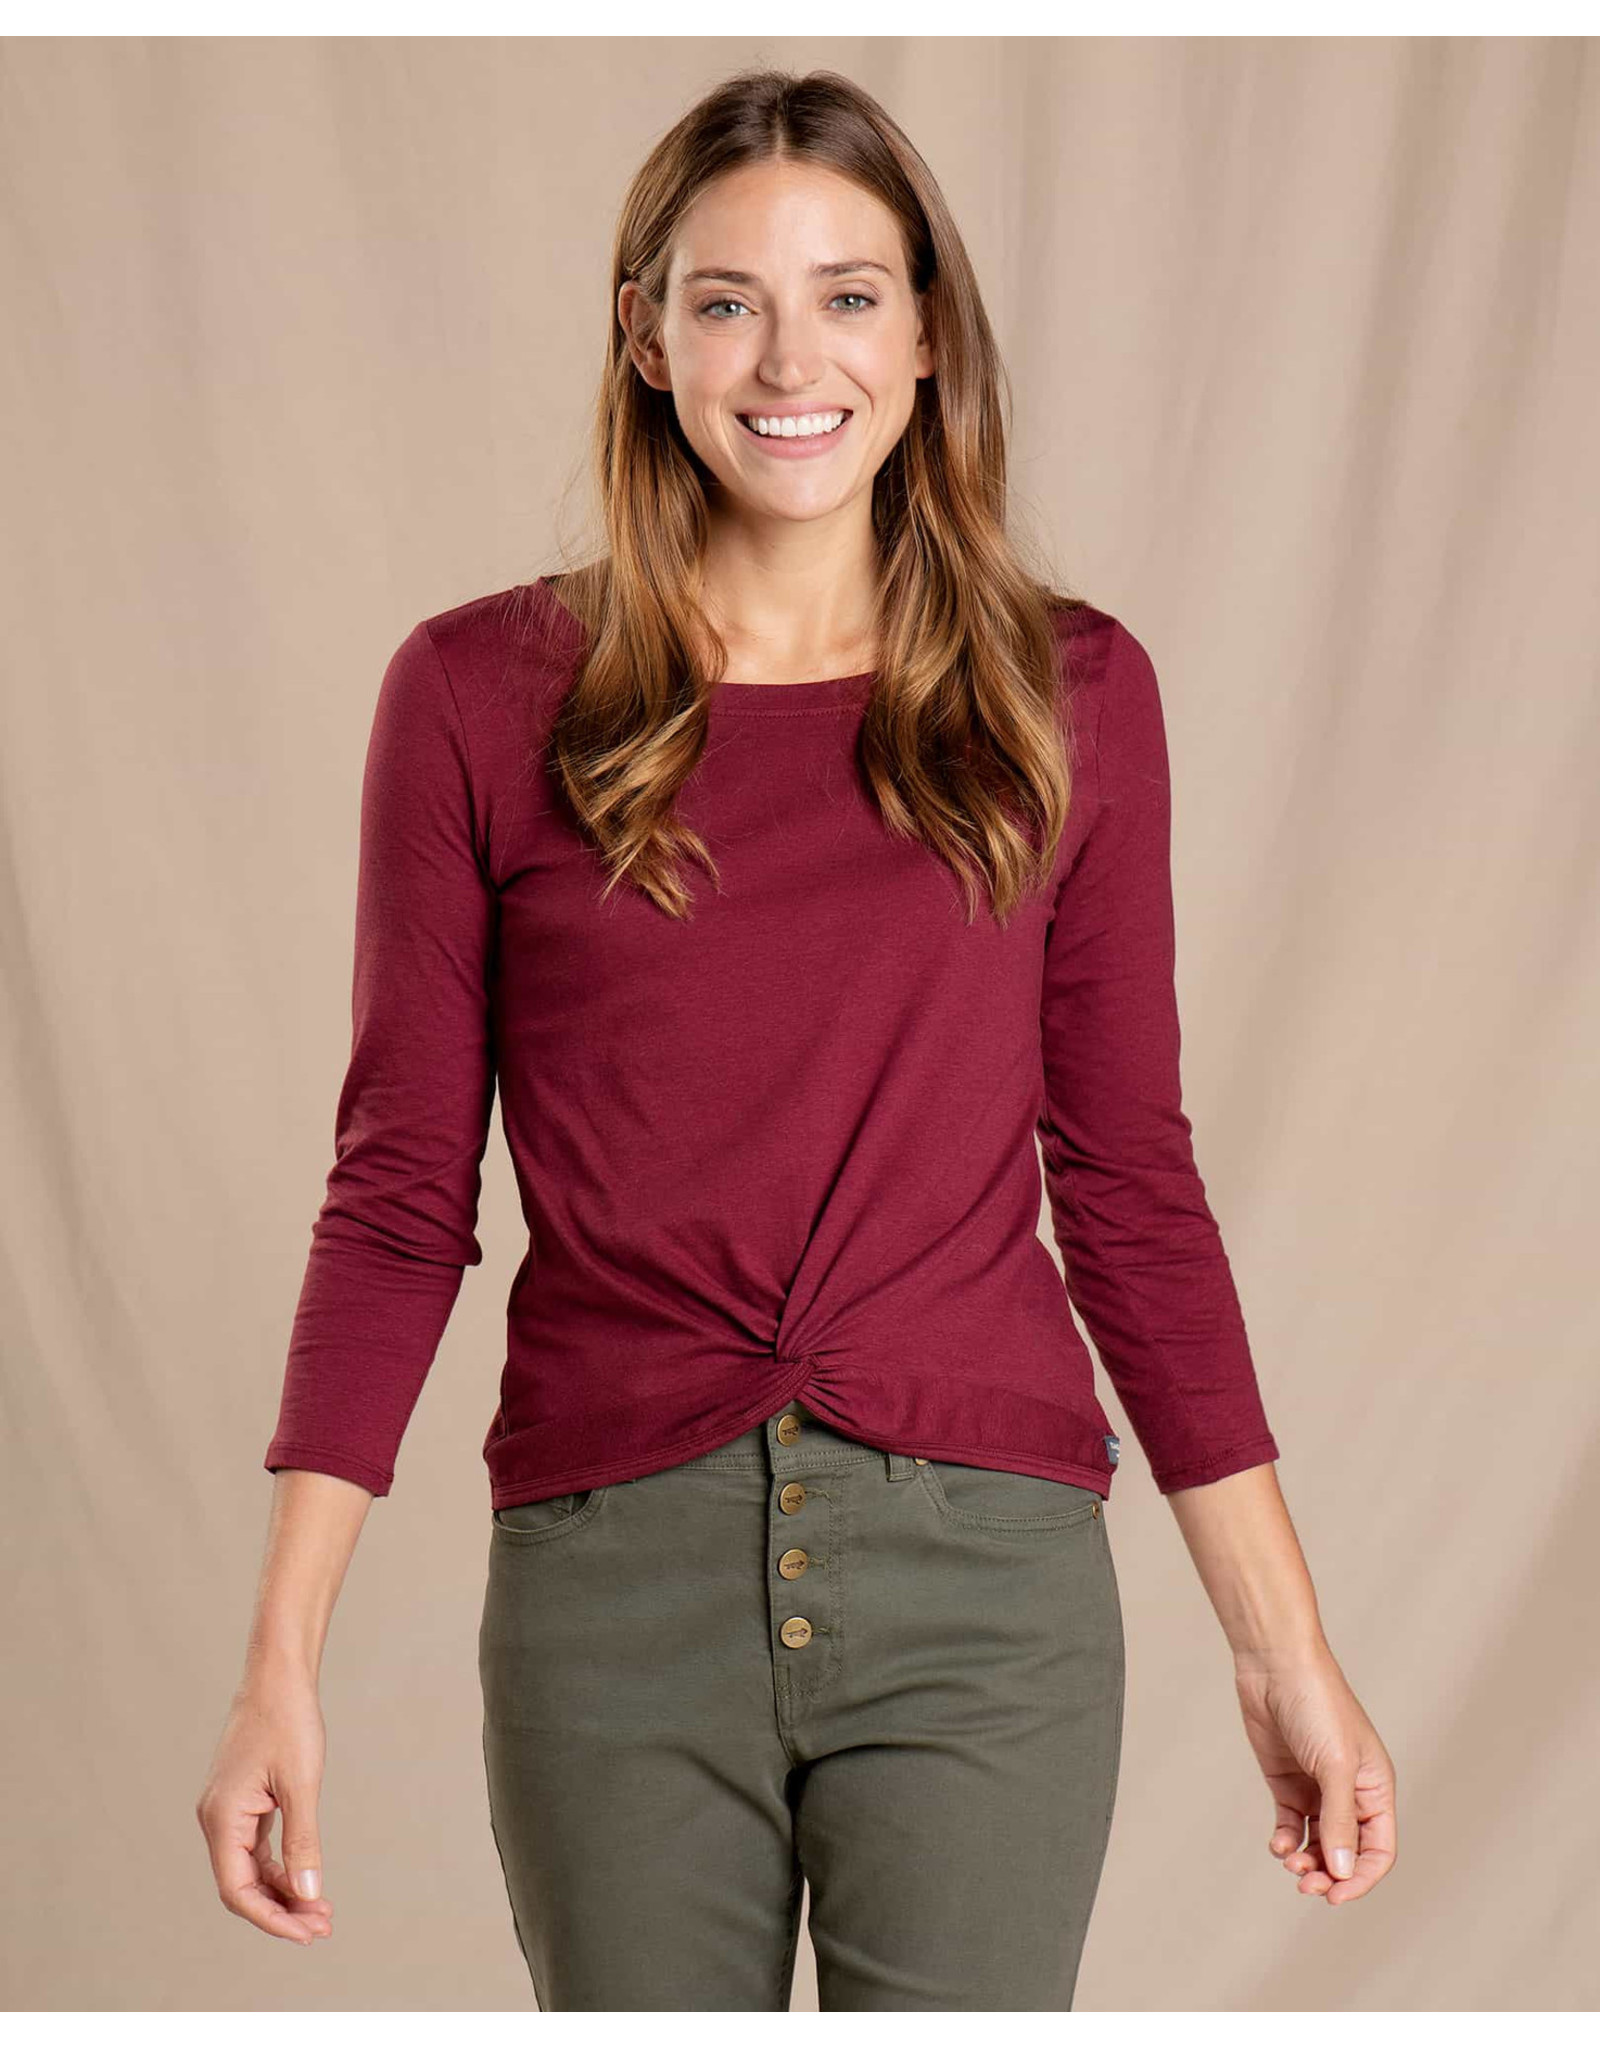 toad & co WOMEN'S TOAD & CO. MAISEY 3/4 SLEEVE TWIST TOP-PORT